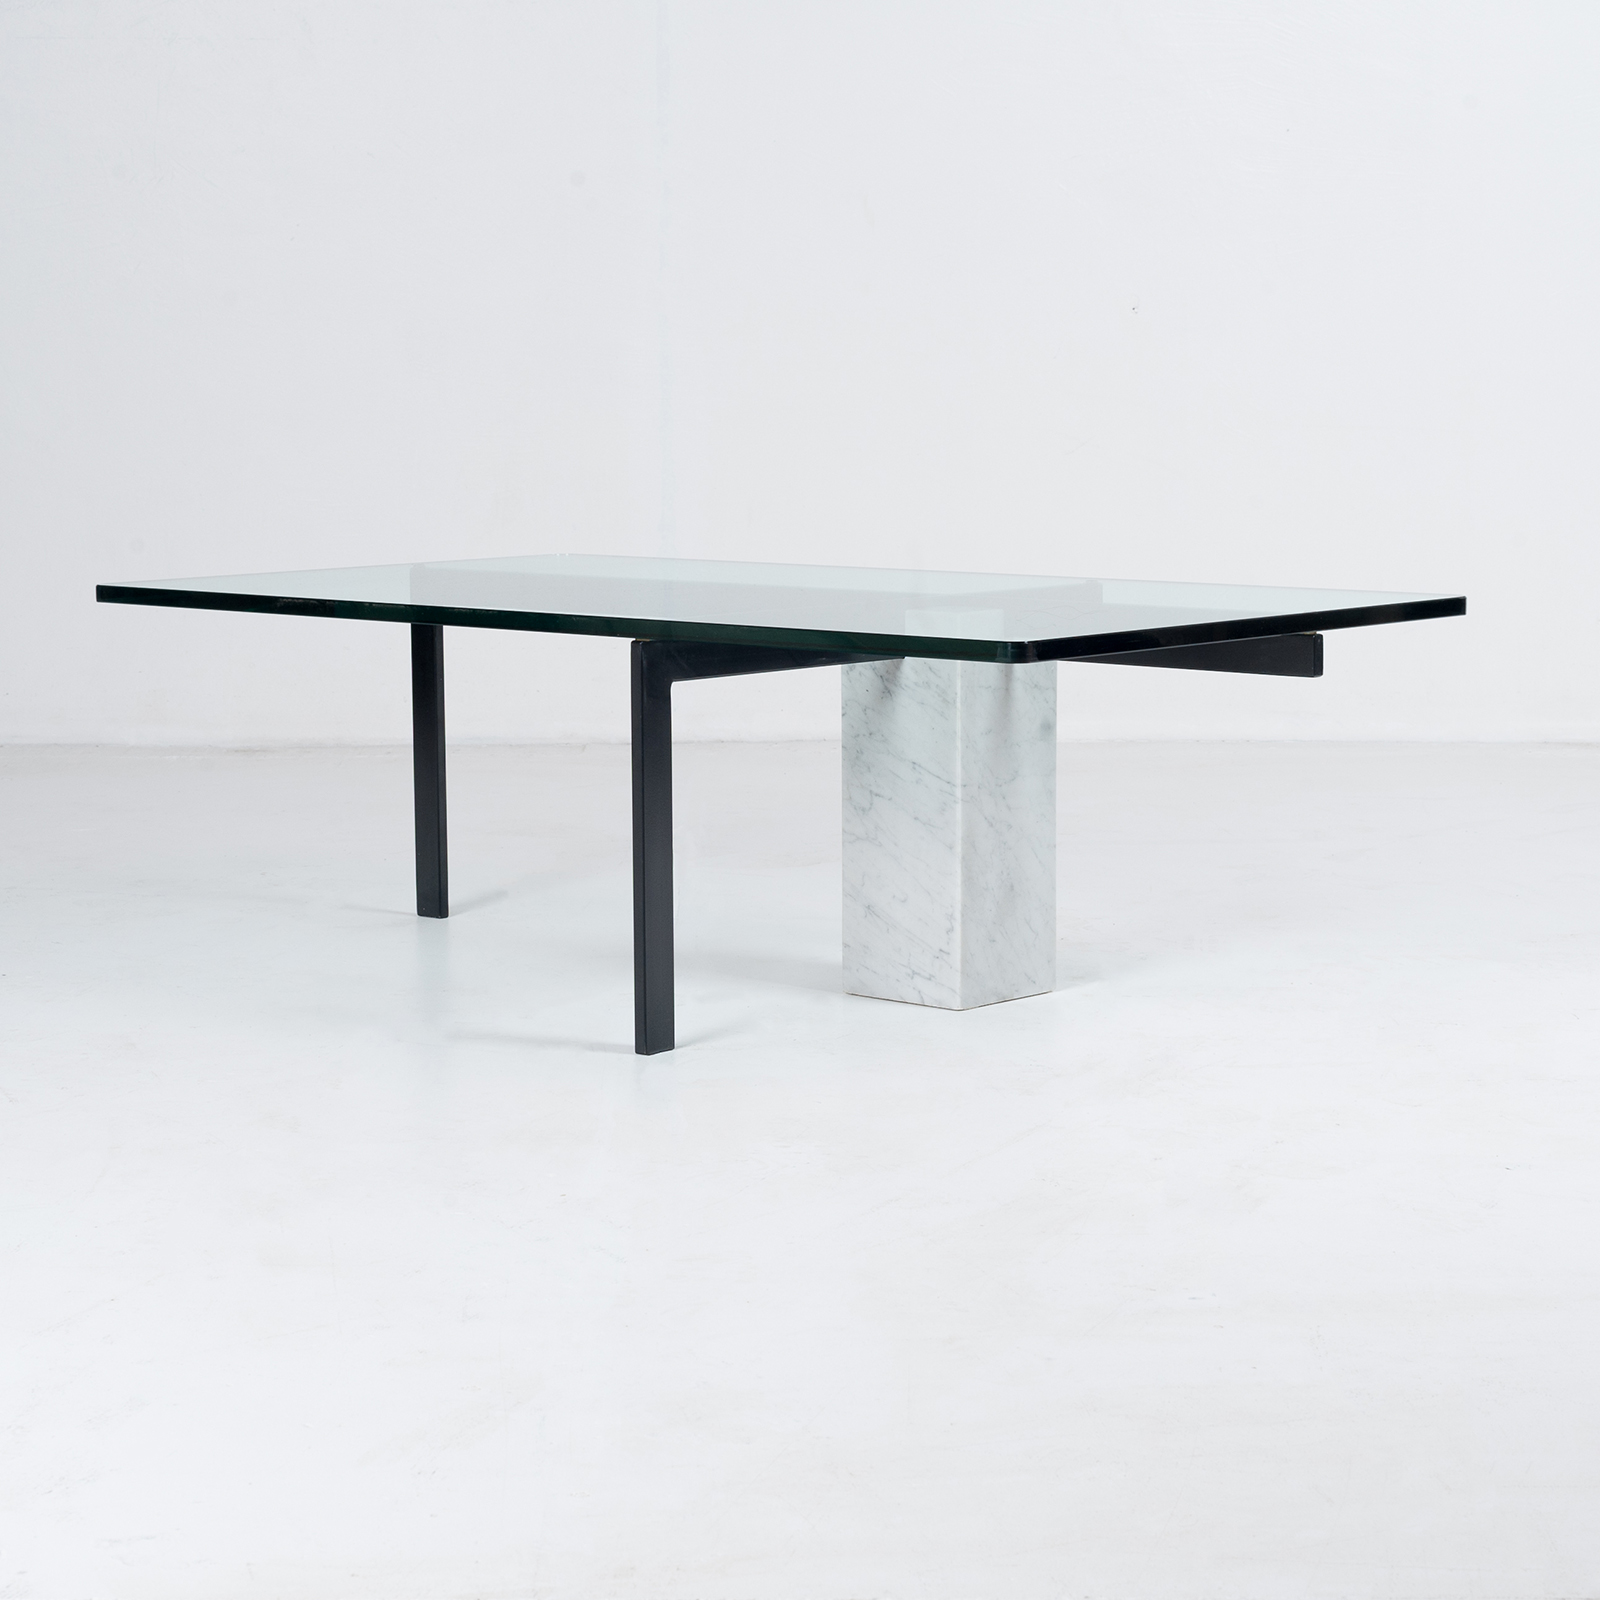 Coffee Table In Marble And Glass, 1960s, The Netherlands 29